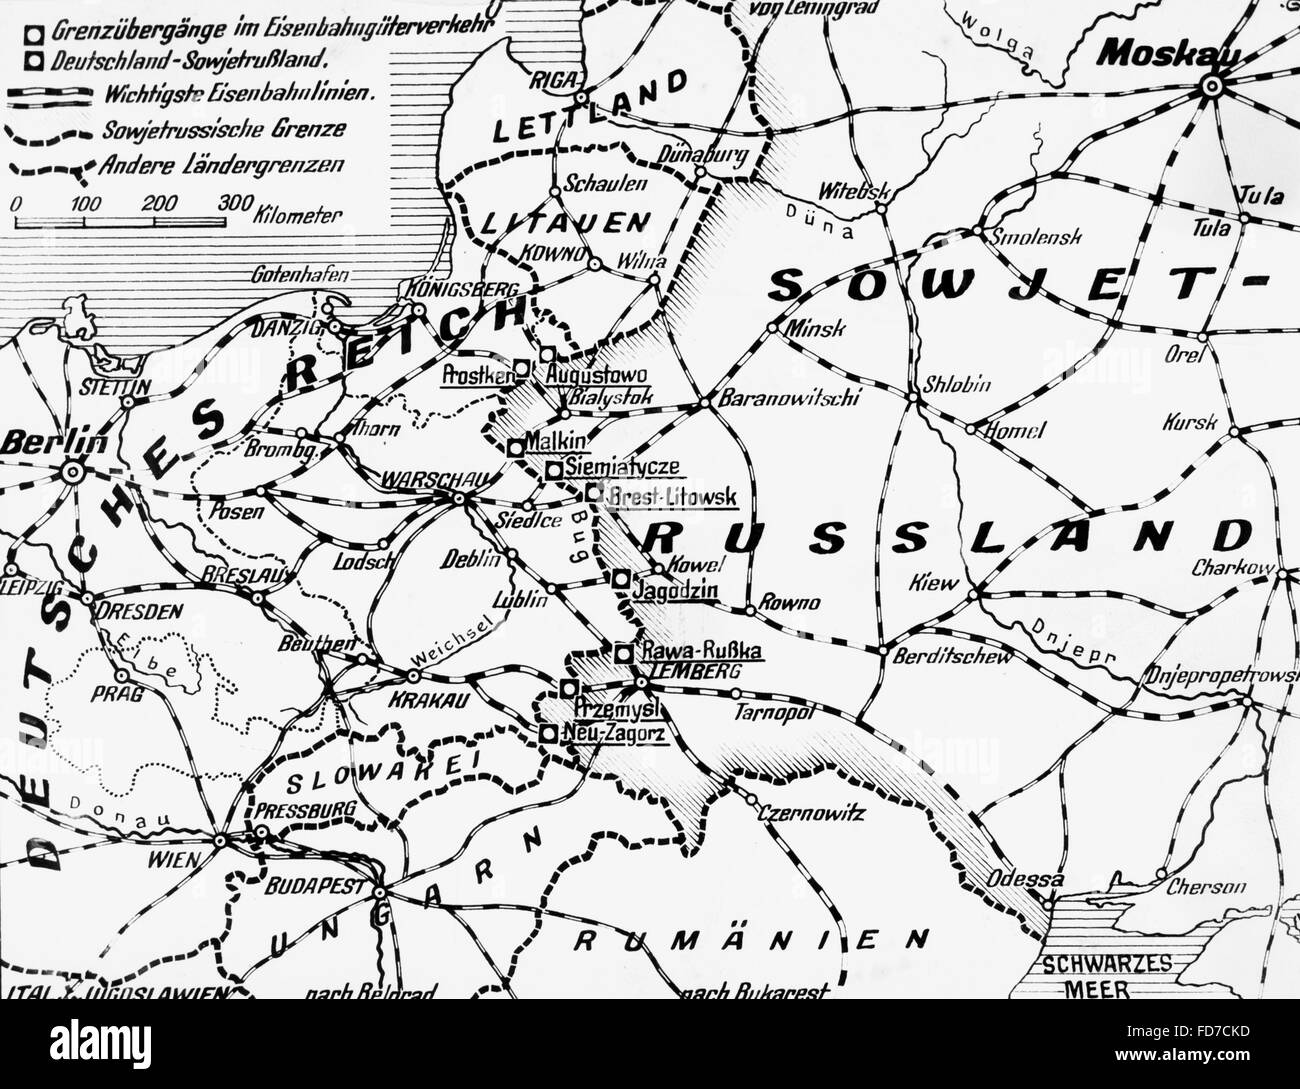 germany 1940 stock photos germany 1940 stock images alamy C-46 Aircraft map of eastern europe german soviet border 1940 stock image